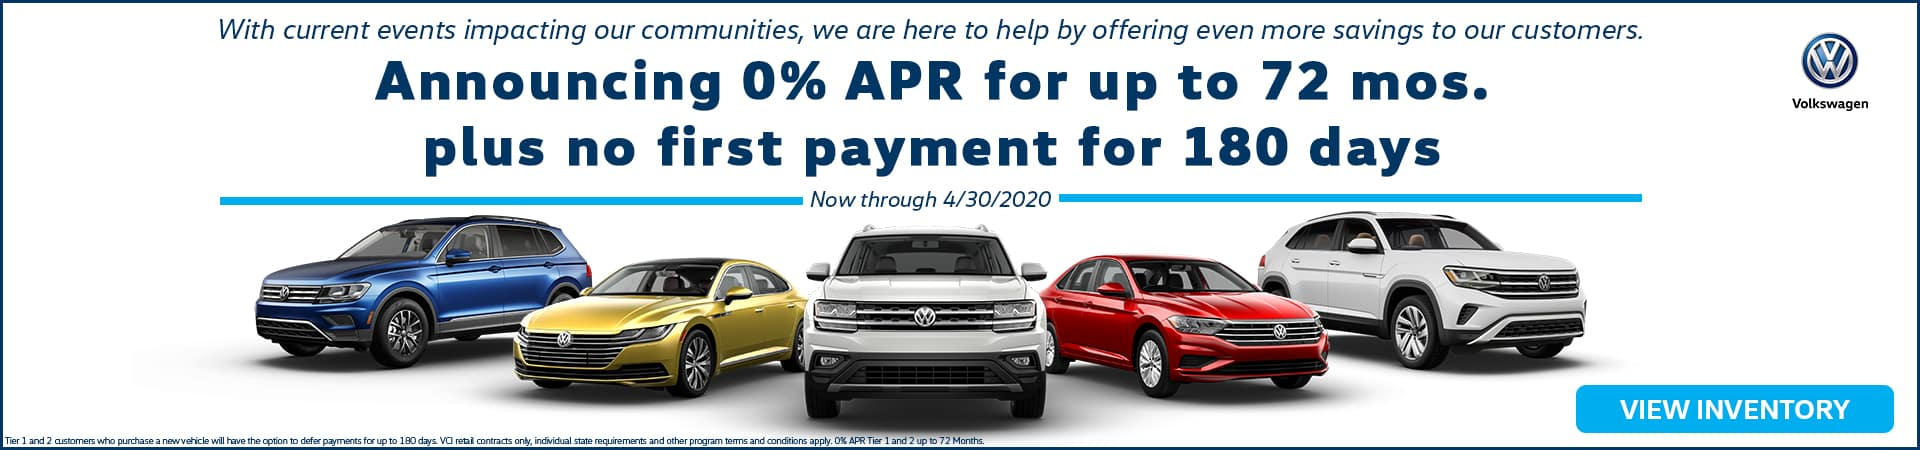 Announcing 0% APR for up to 72 months plus no first payment for 180 days now through April 30, 2020